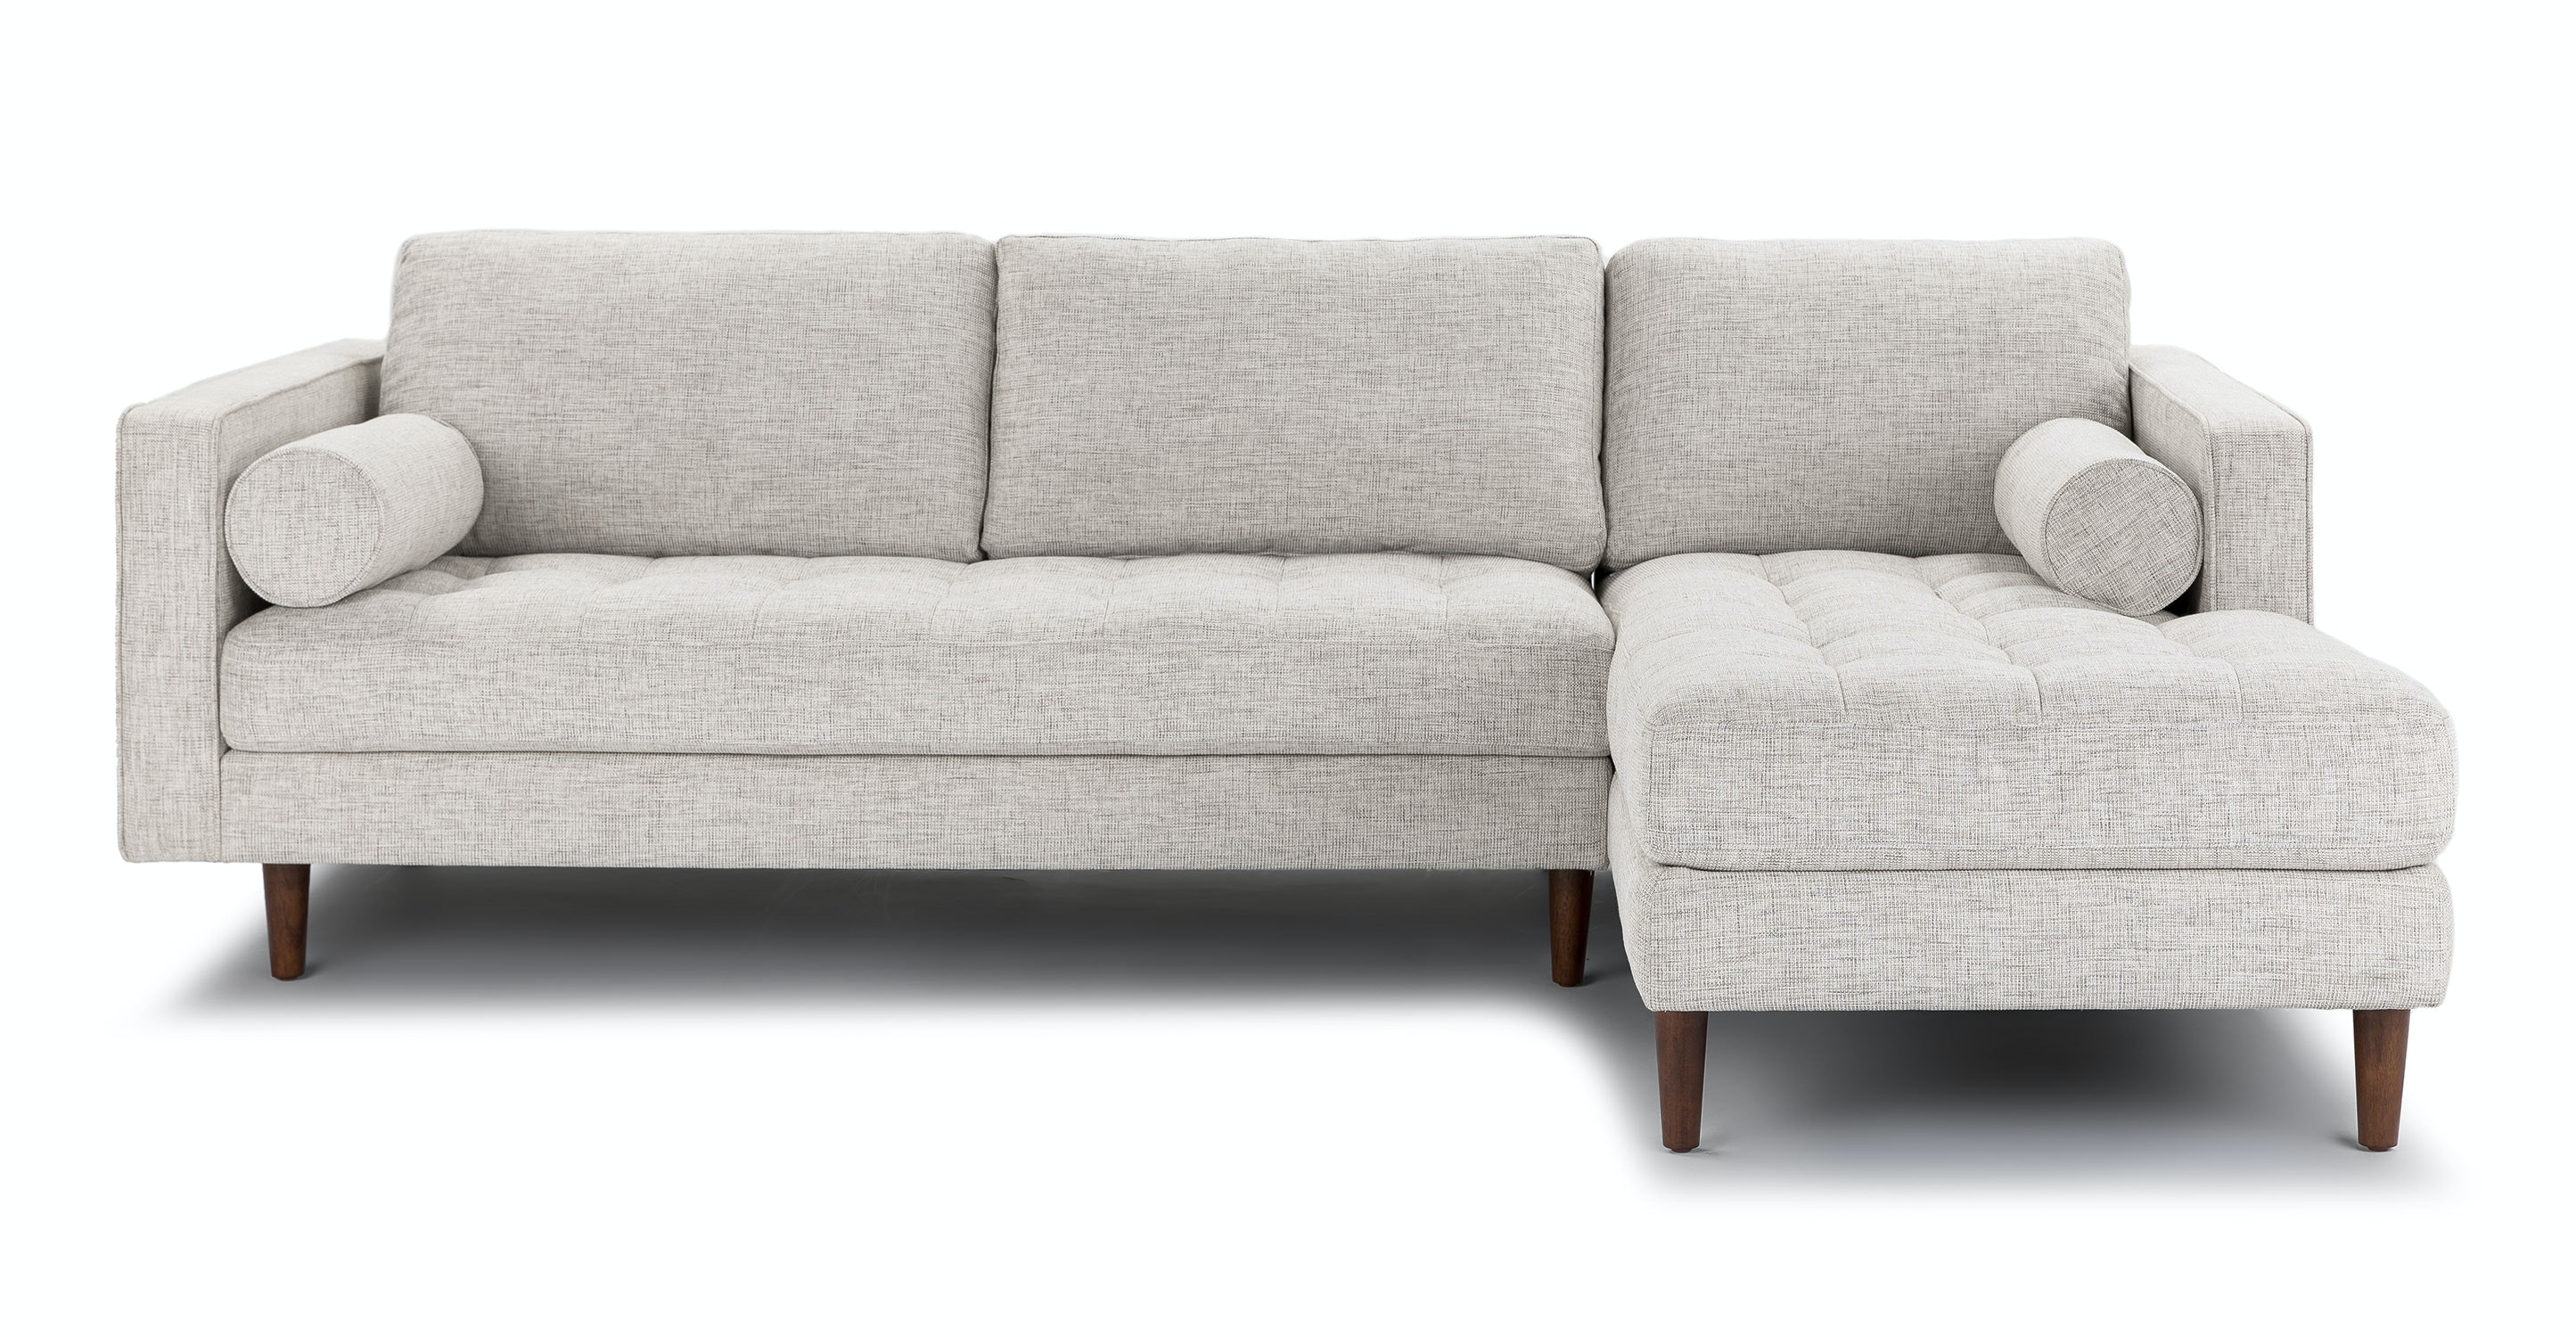 Charming Sven Birch Ivory Right Sectional Sofa   Sectionals   Article | Modern,  Mid Century And Scandinavian Furniture